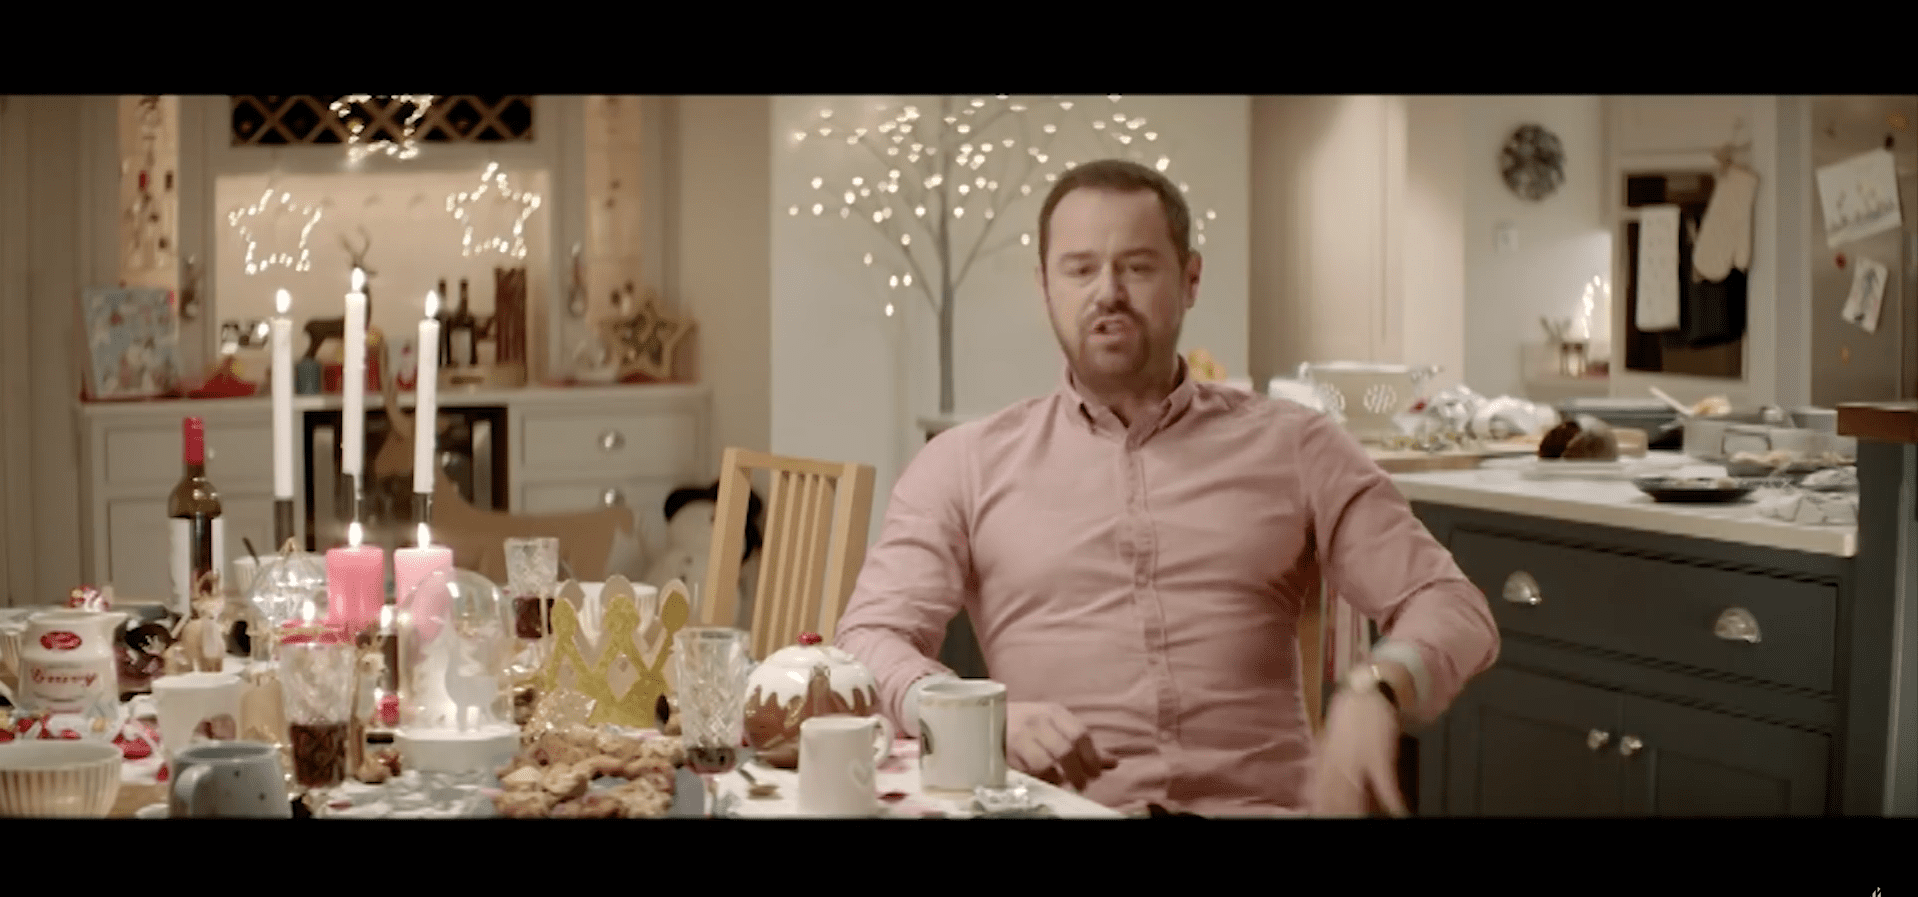 Danny Dyer – Christmas 2019 Speech at one of our projects: Roebuck